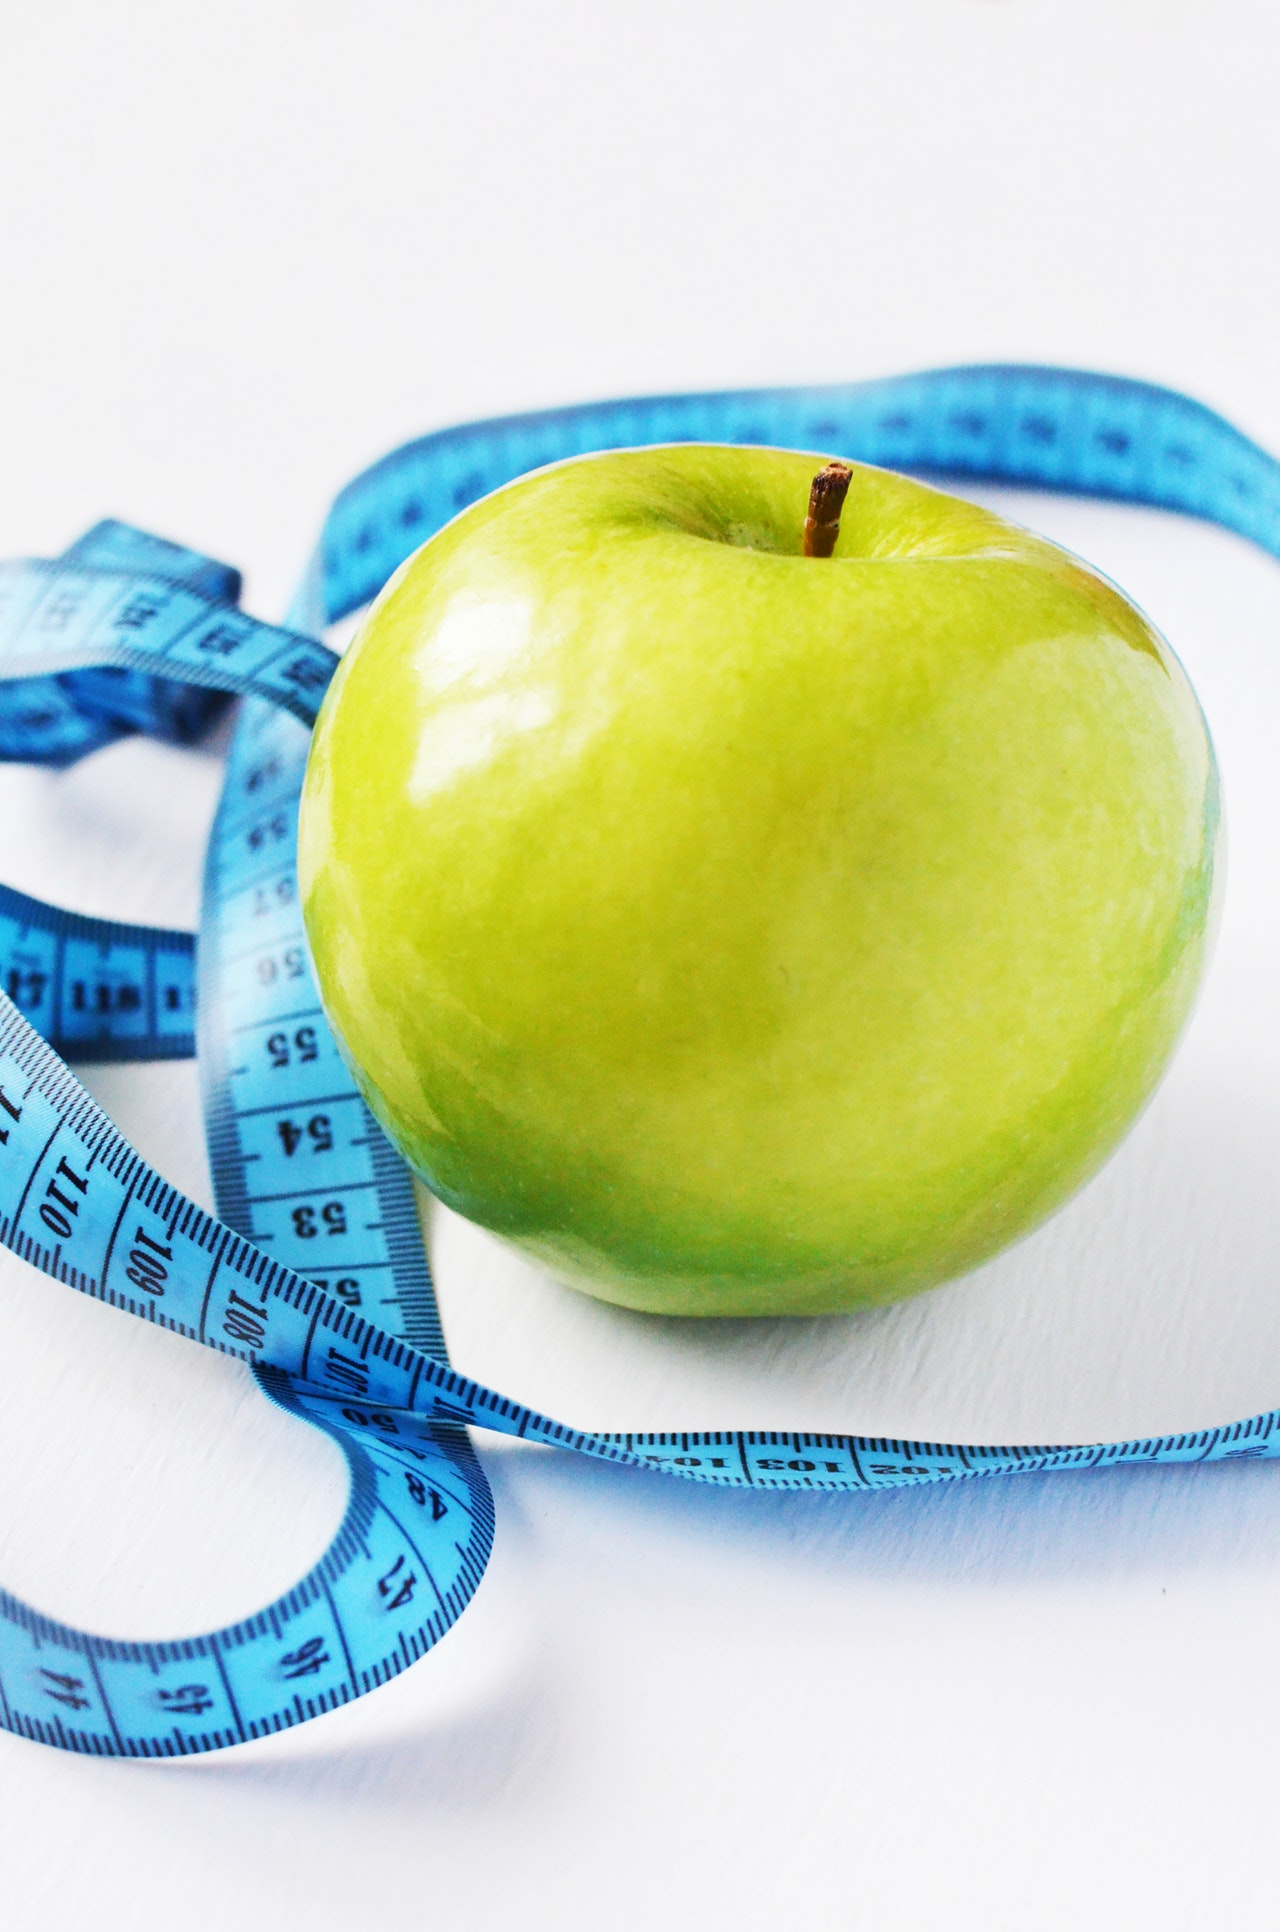 Benefits of Losing Weight – Lose Weight to Be Healthy